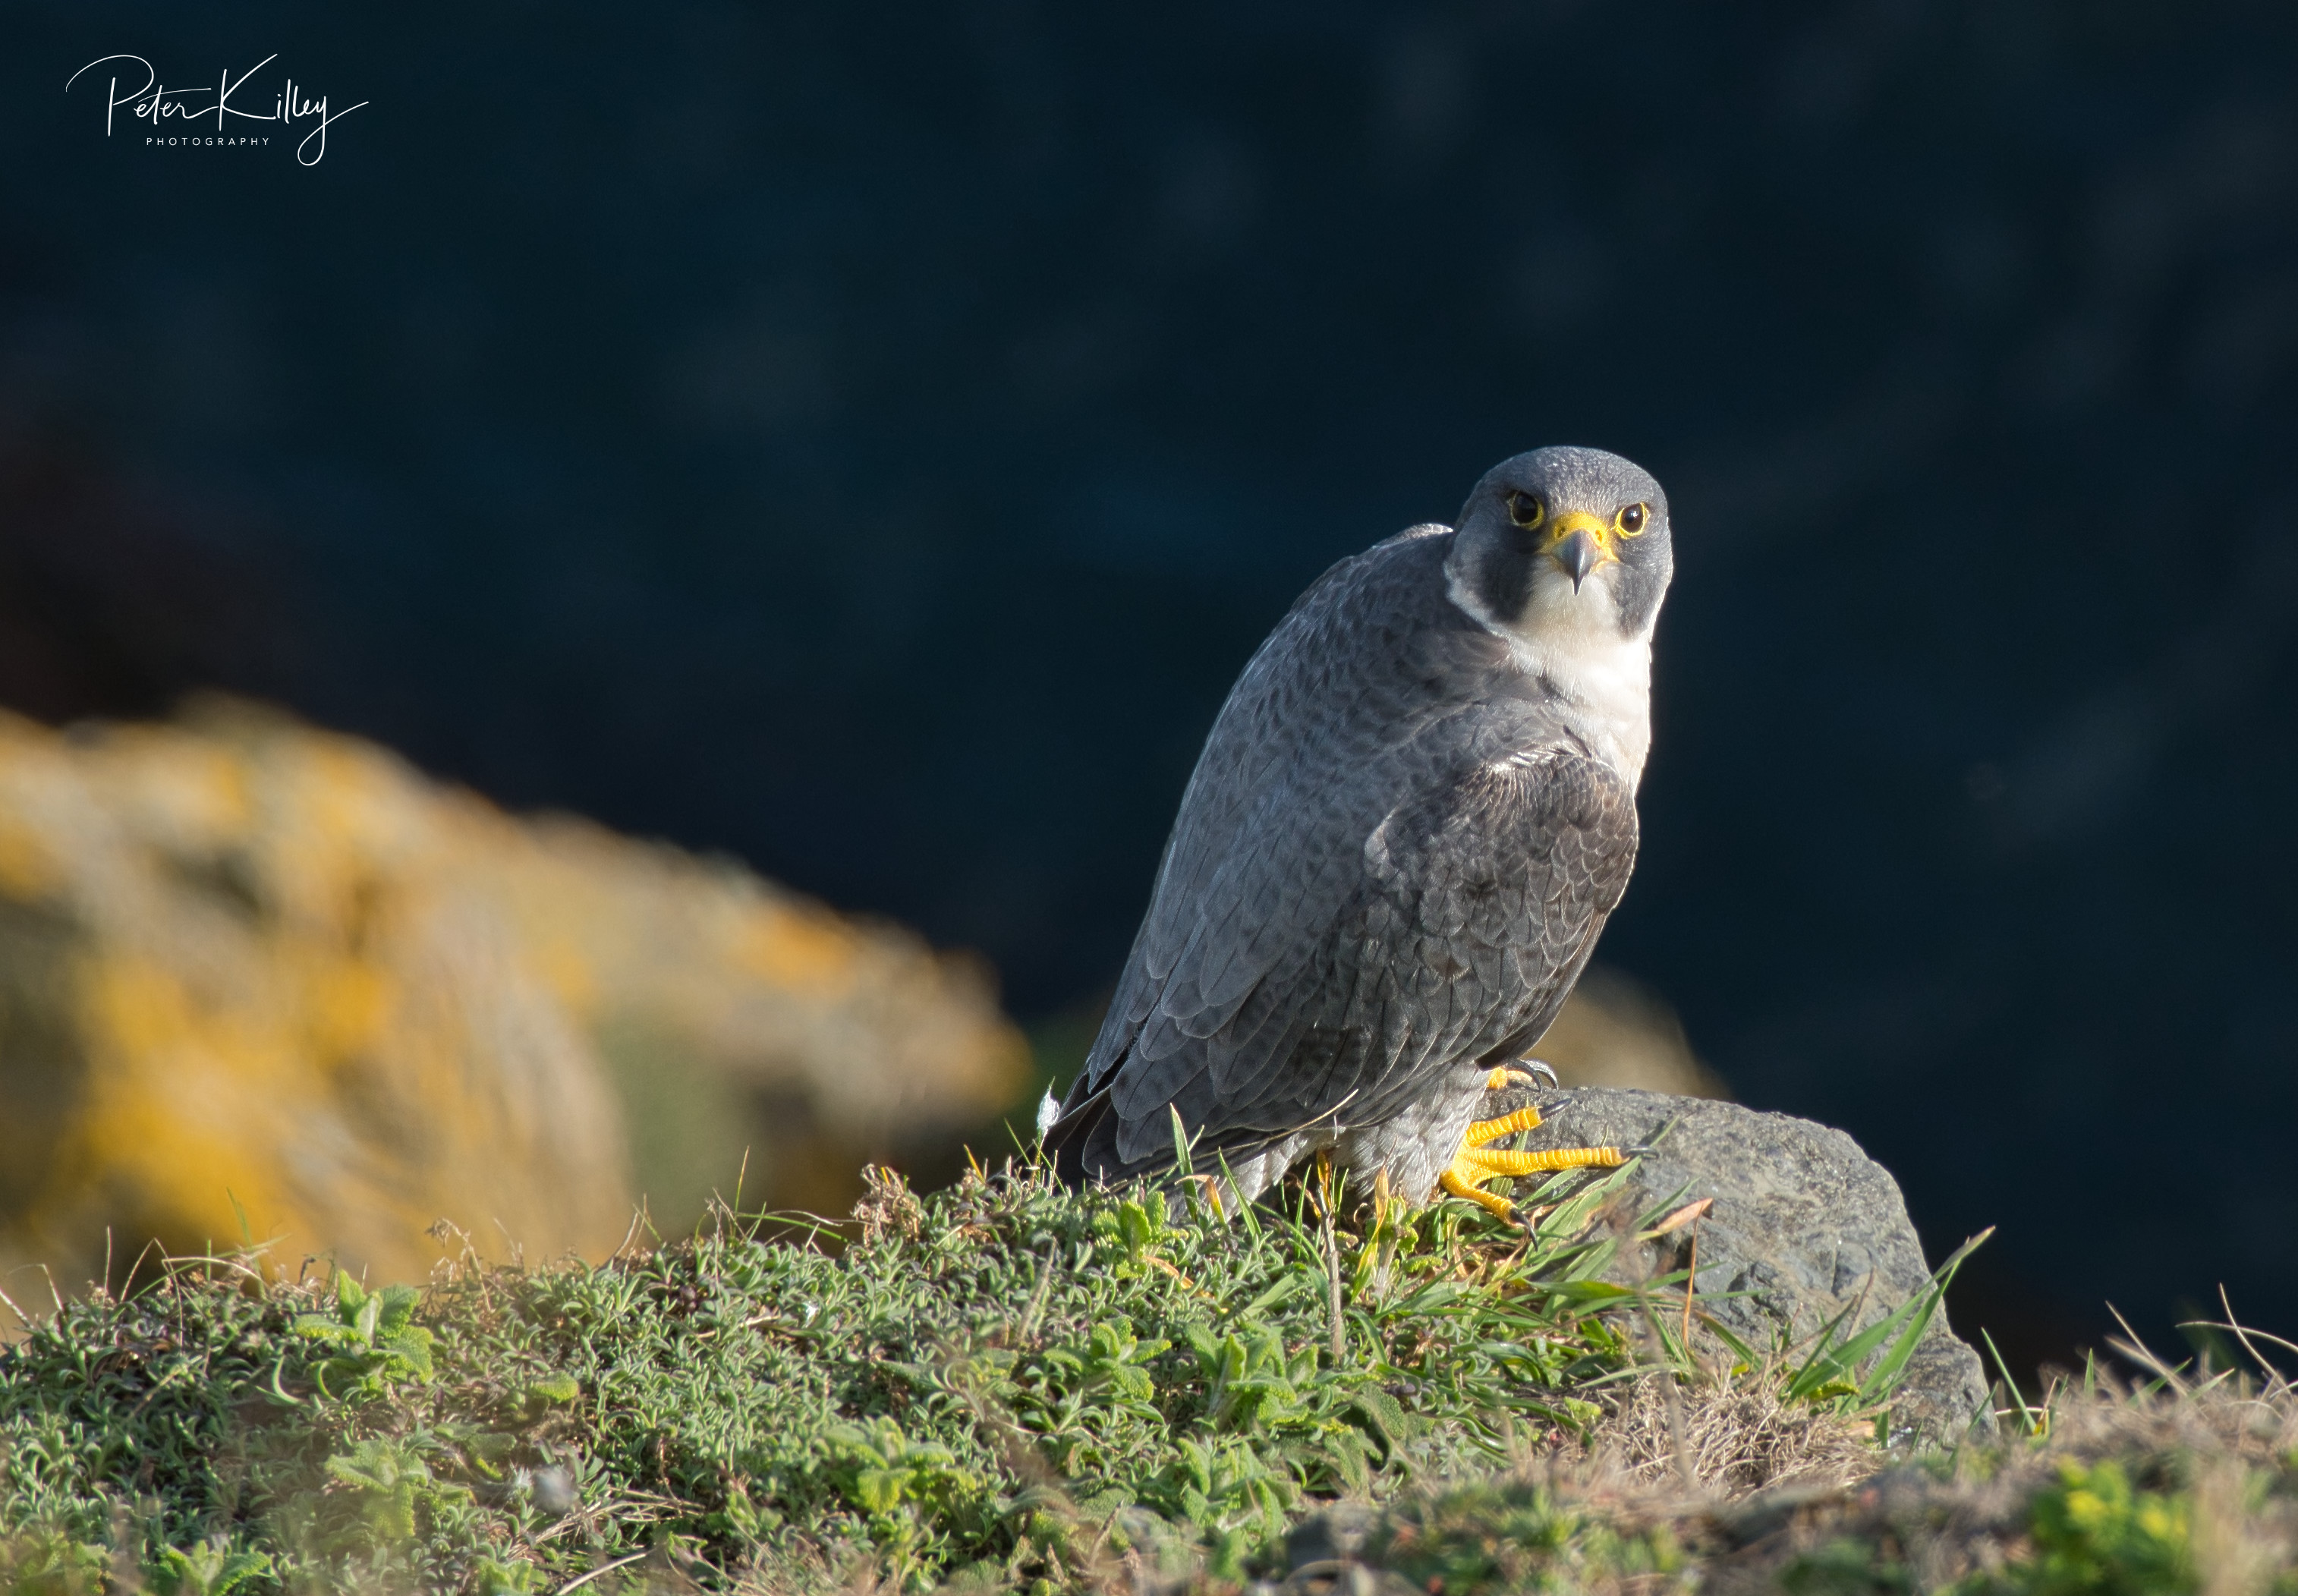 Male Peregrine Falcon - © Peter Killey - www.manxscenes.com